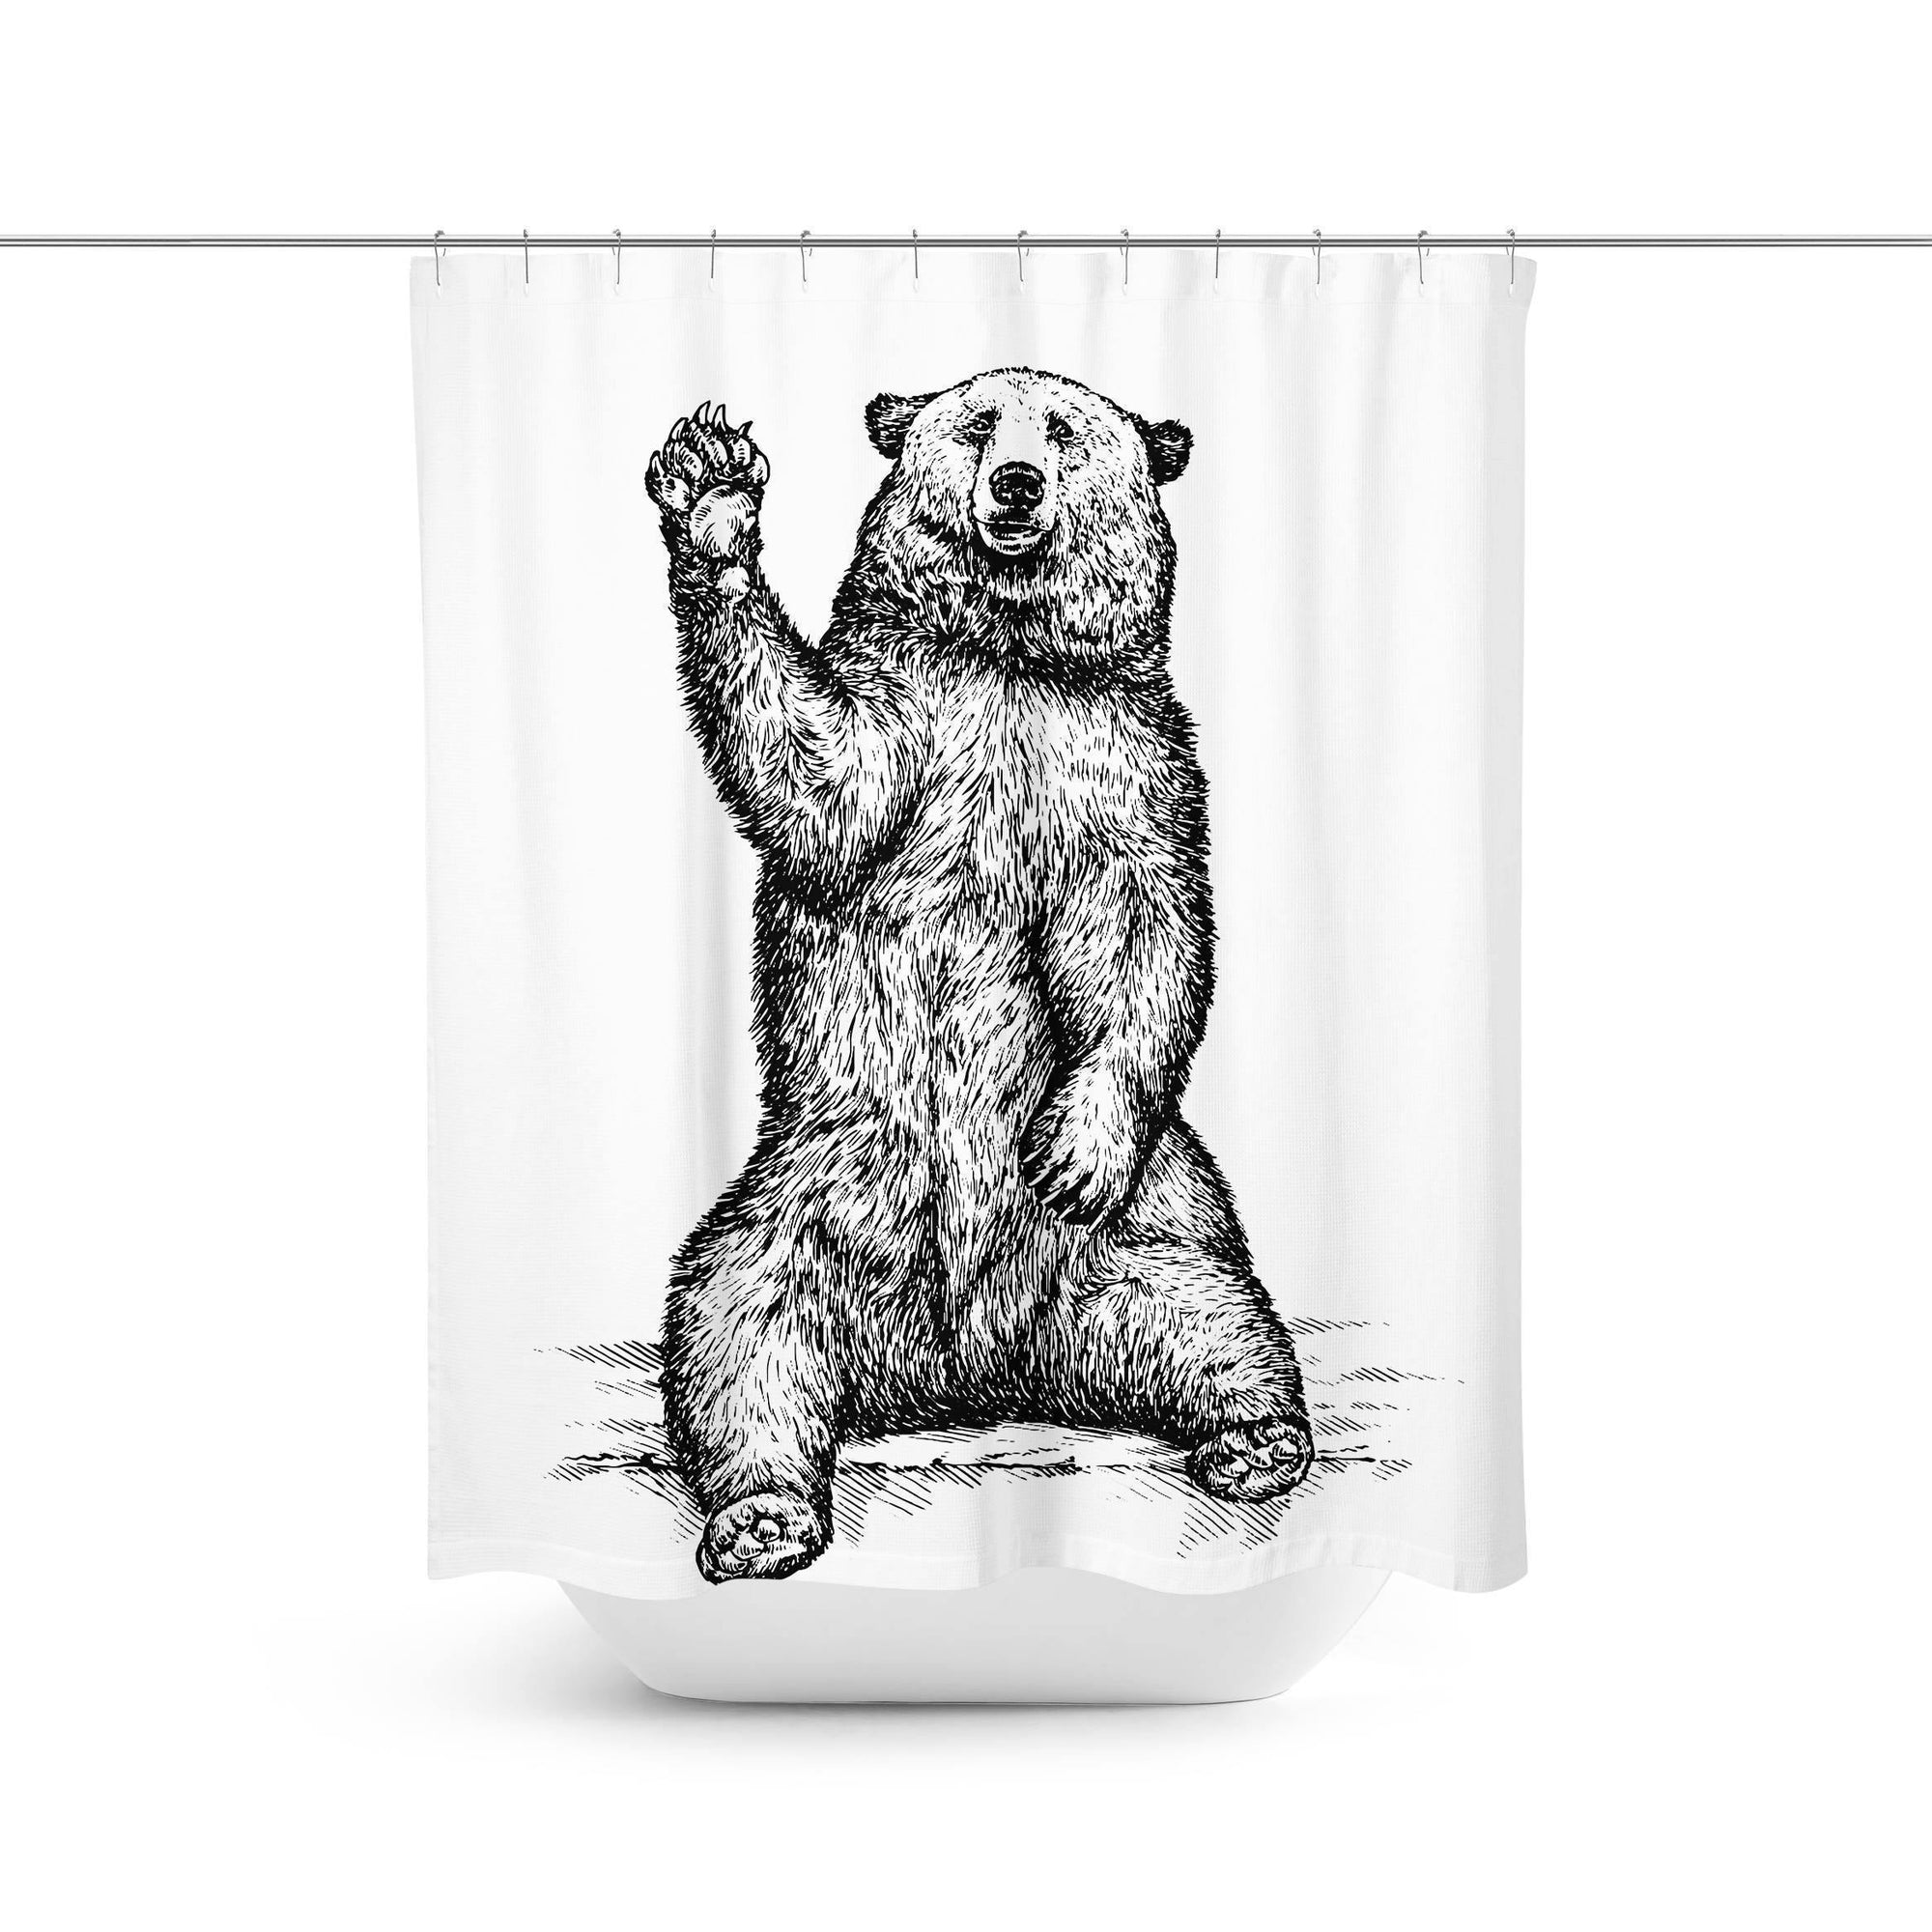 Bear Shower Curtain-W.FRANCIS